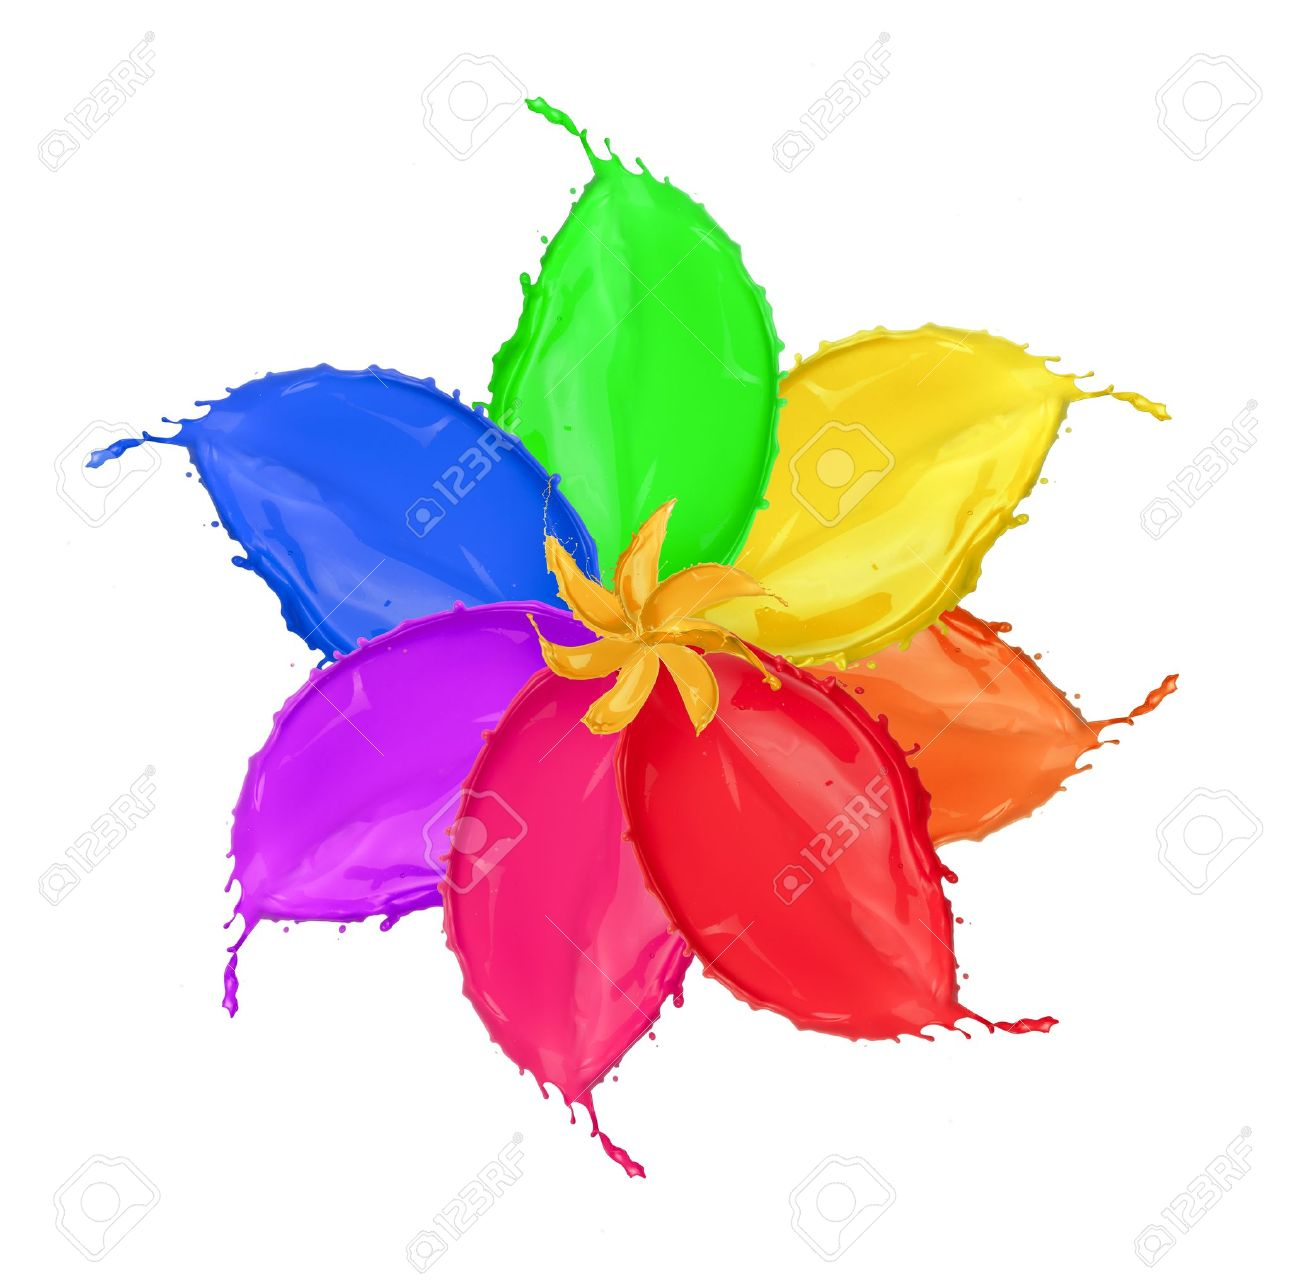 Colored Flower Blossom Made Of Paint Splashes Isolated On White